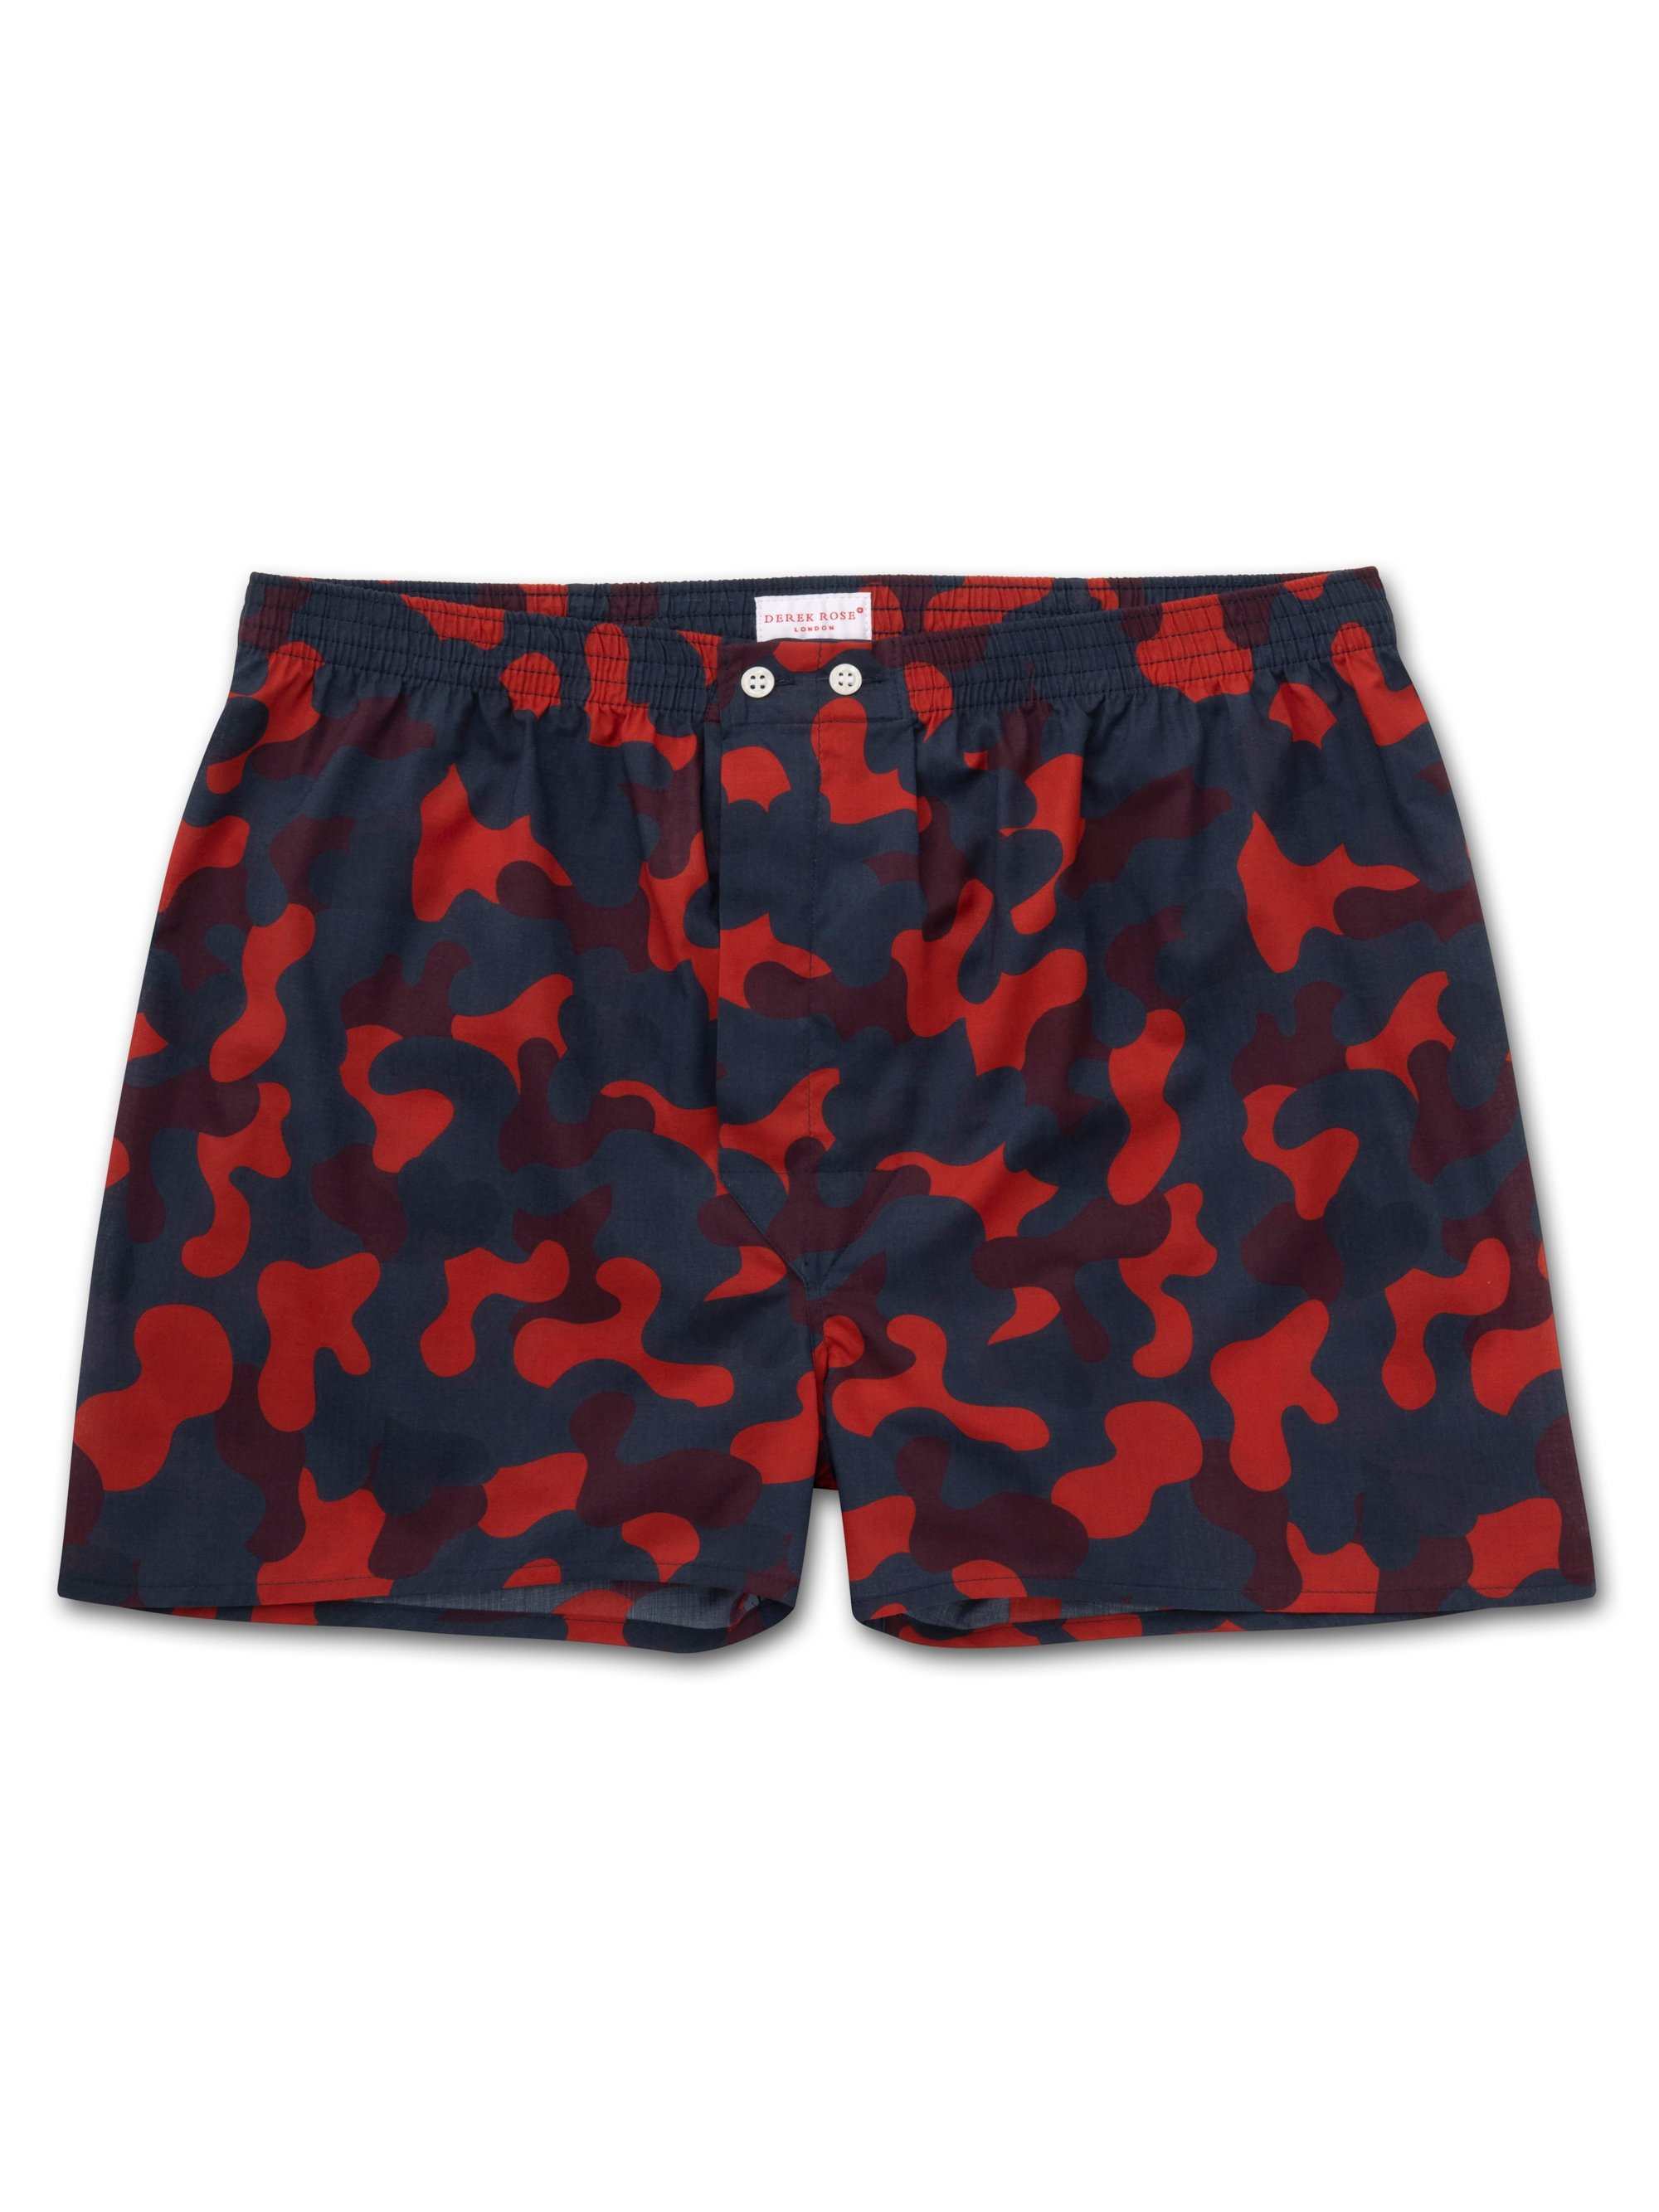 Men's Classic Fit Boxer Shorts Ledbury 36 Cotton Batiste Red